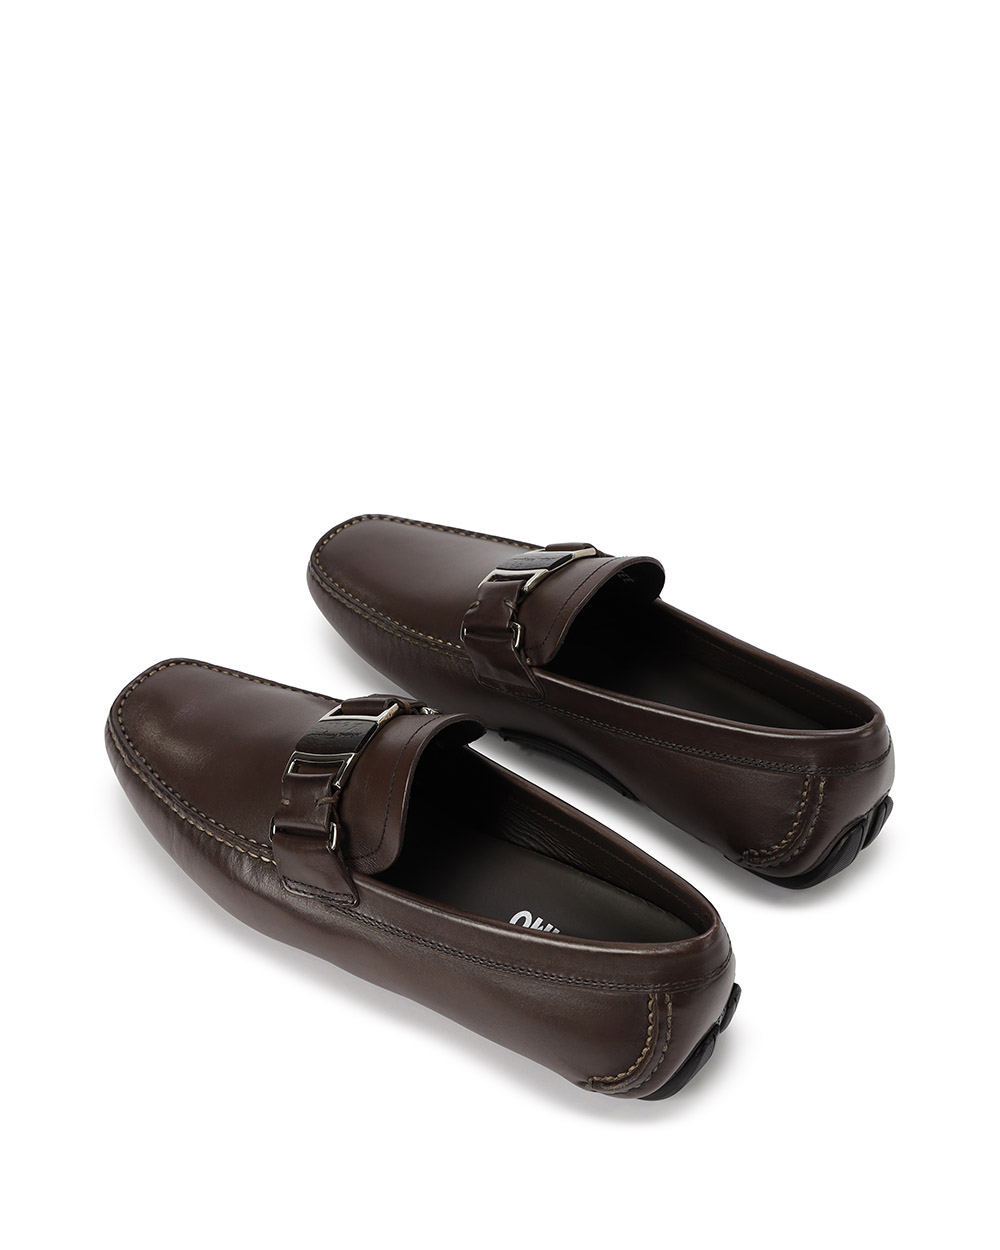 Sardegna Leather Loafers 2